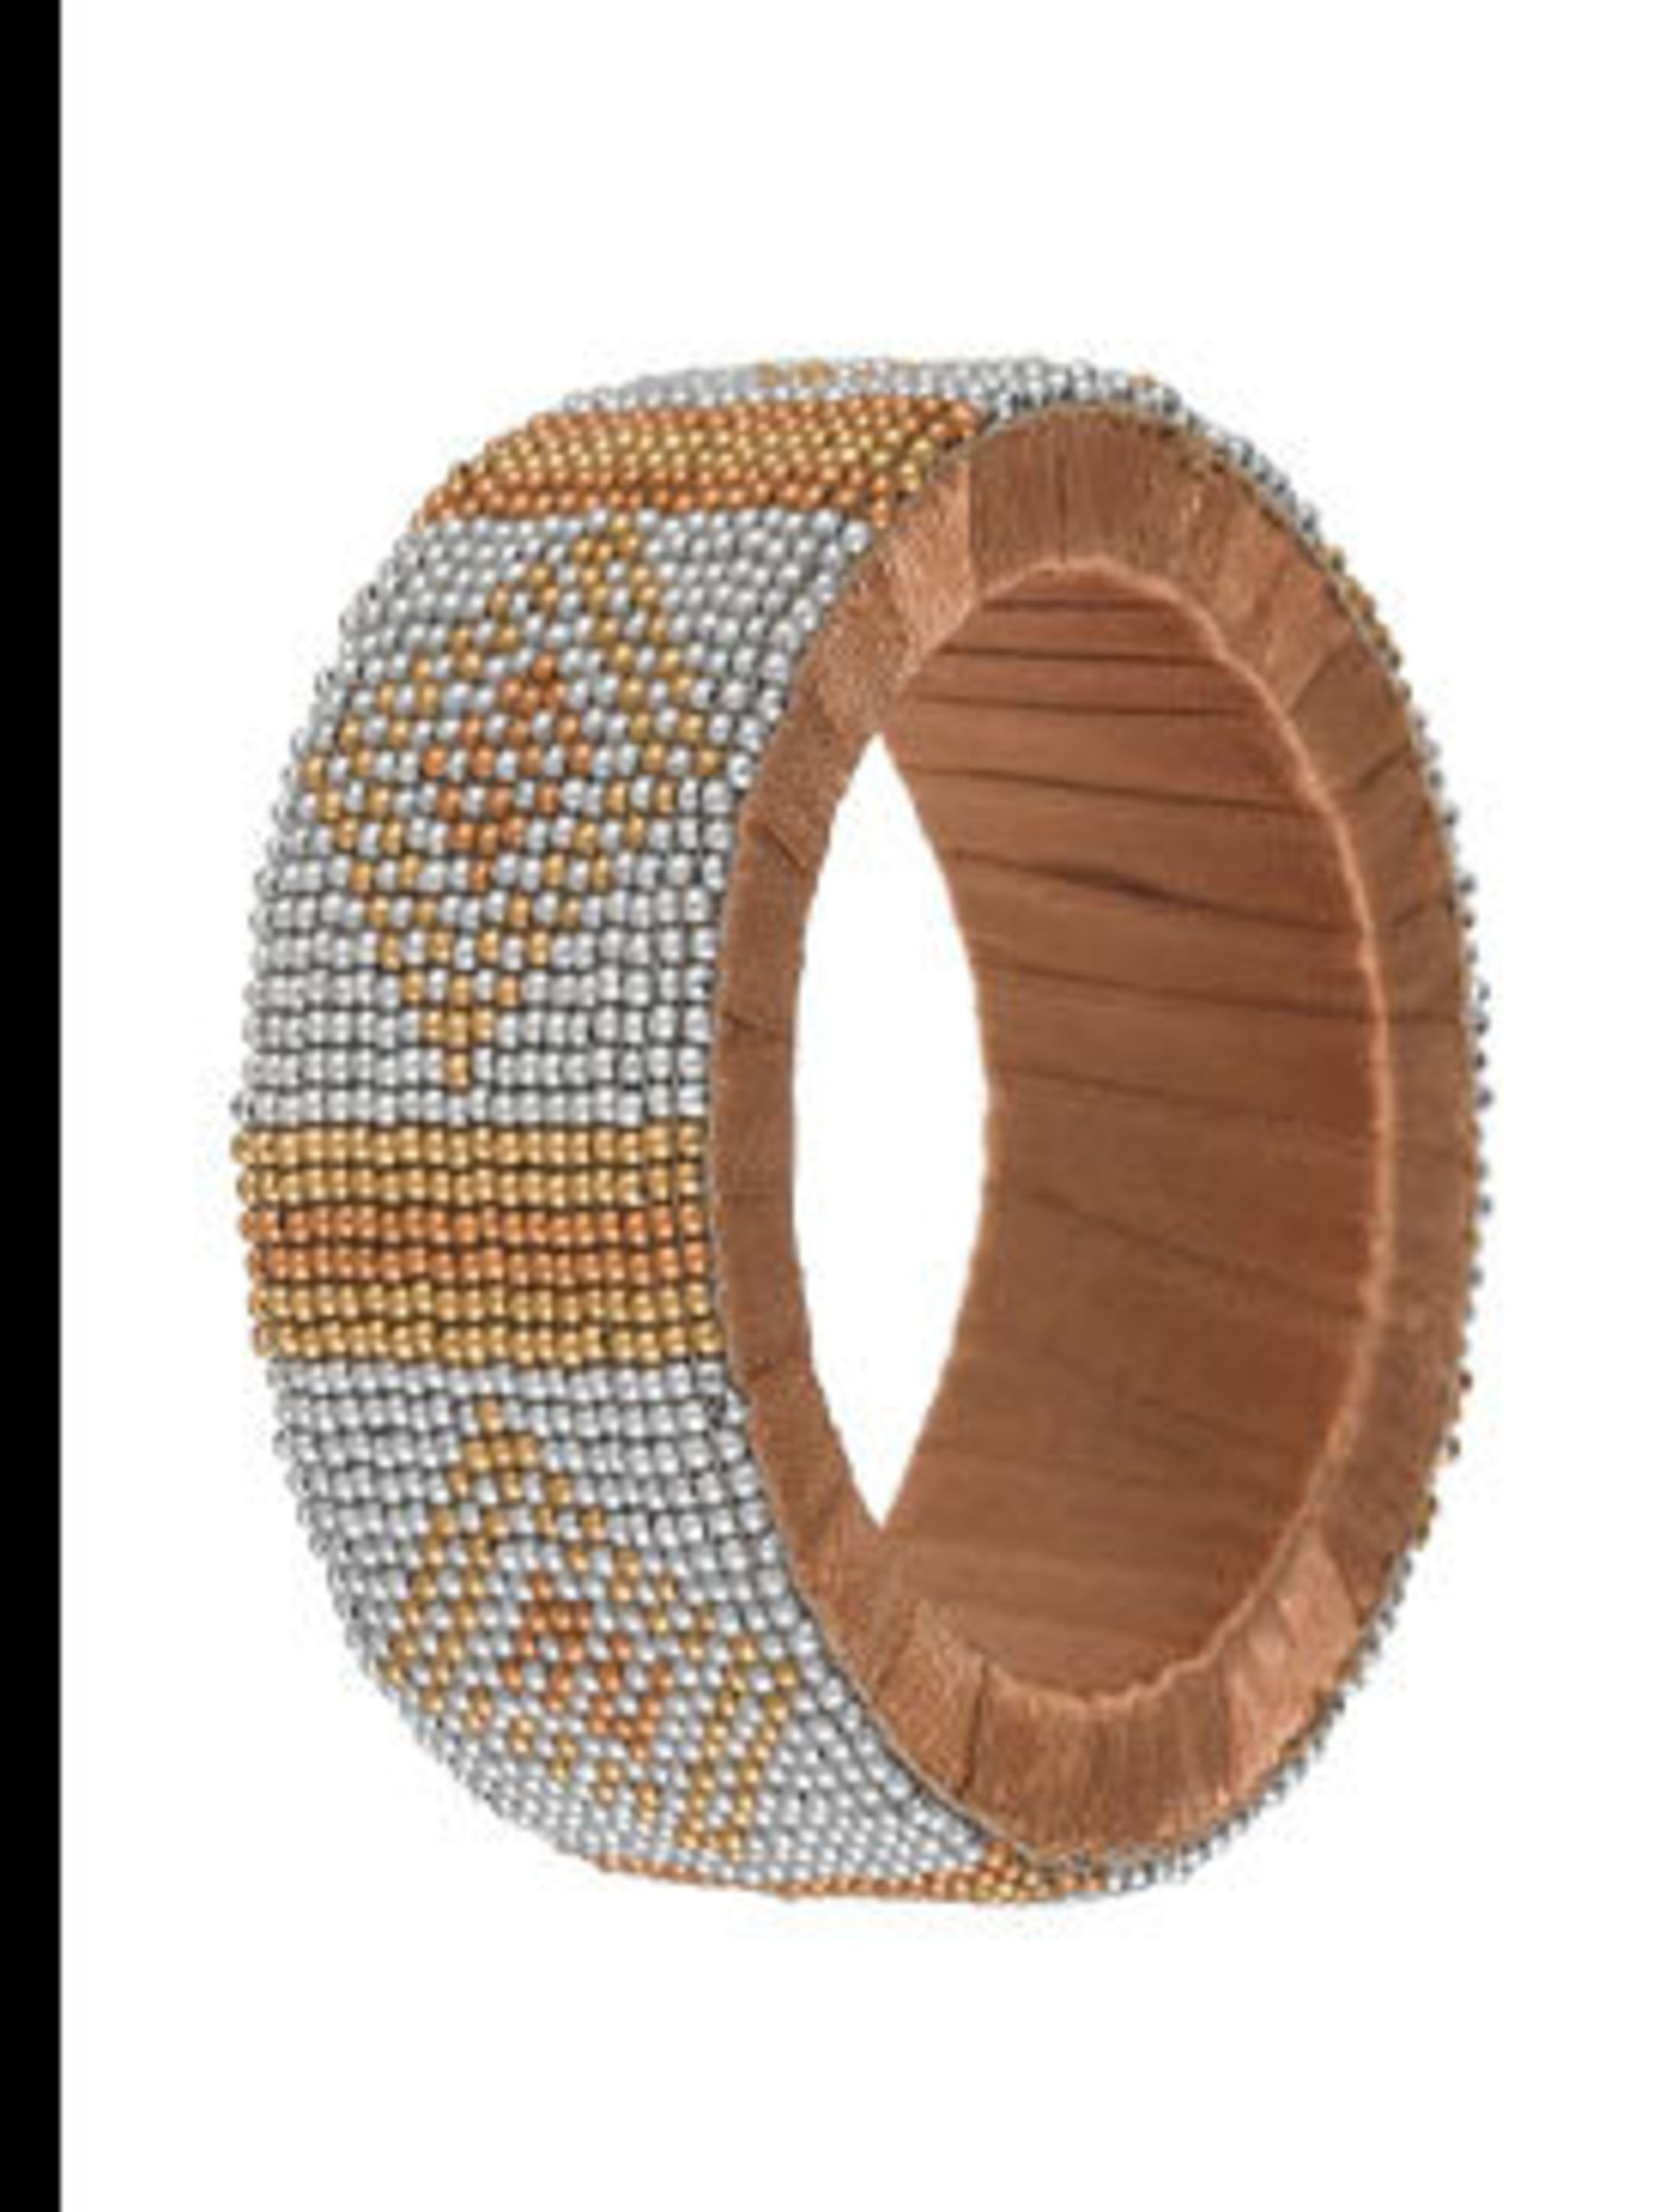 "<p>Bangle, £12 by <a href=""http://www.marksandspencer.com/gp/node/n/42966030/276-7919945-1741309?intid=gnav_hp_img"">Marks and Spencer</a></p>"